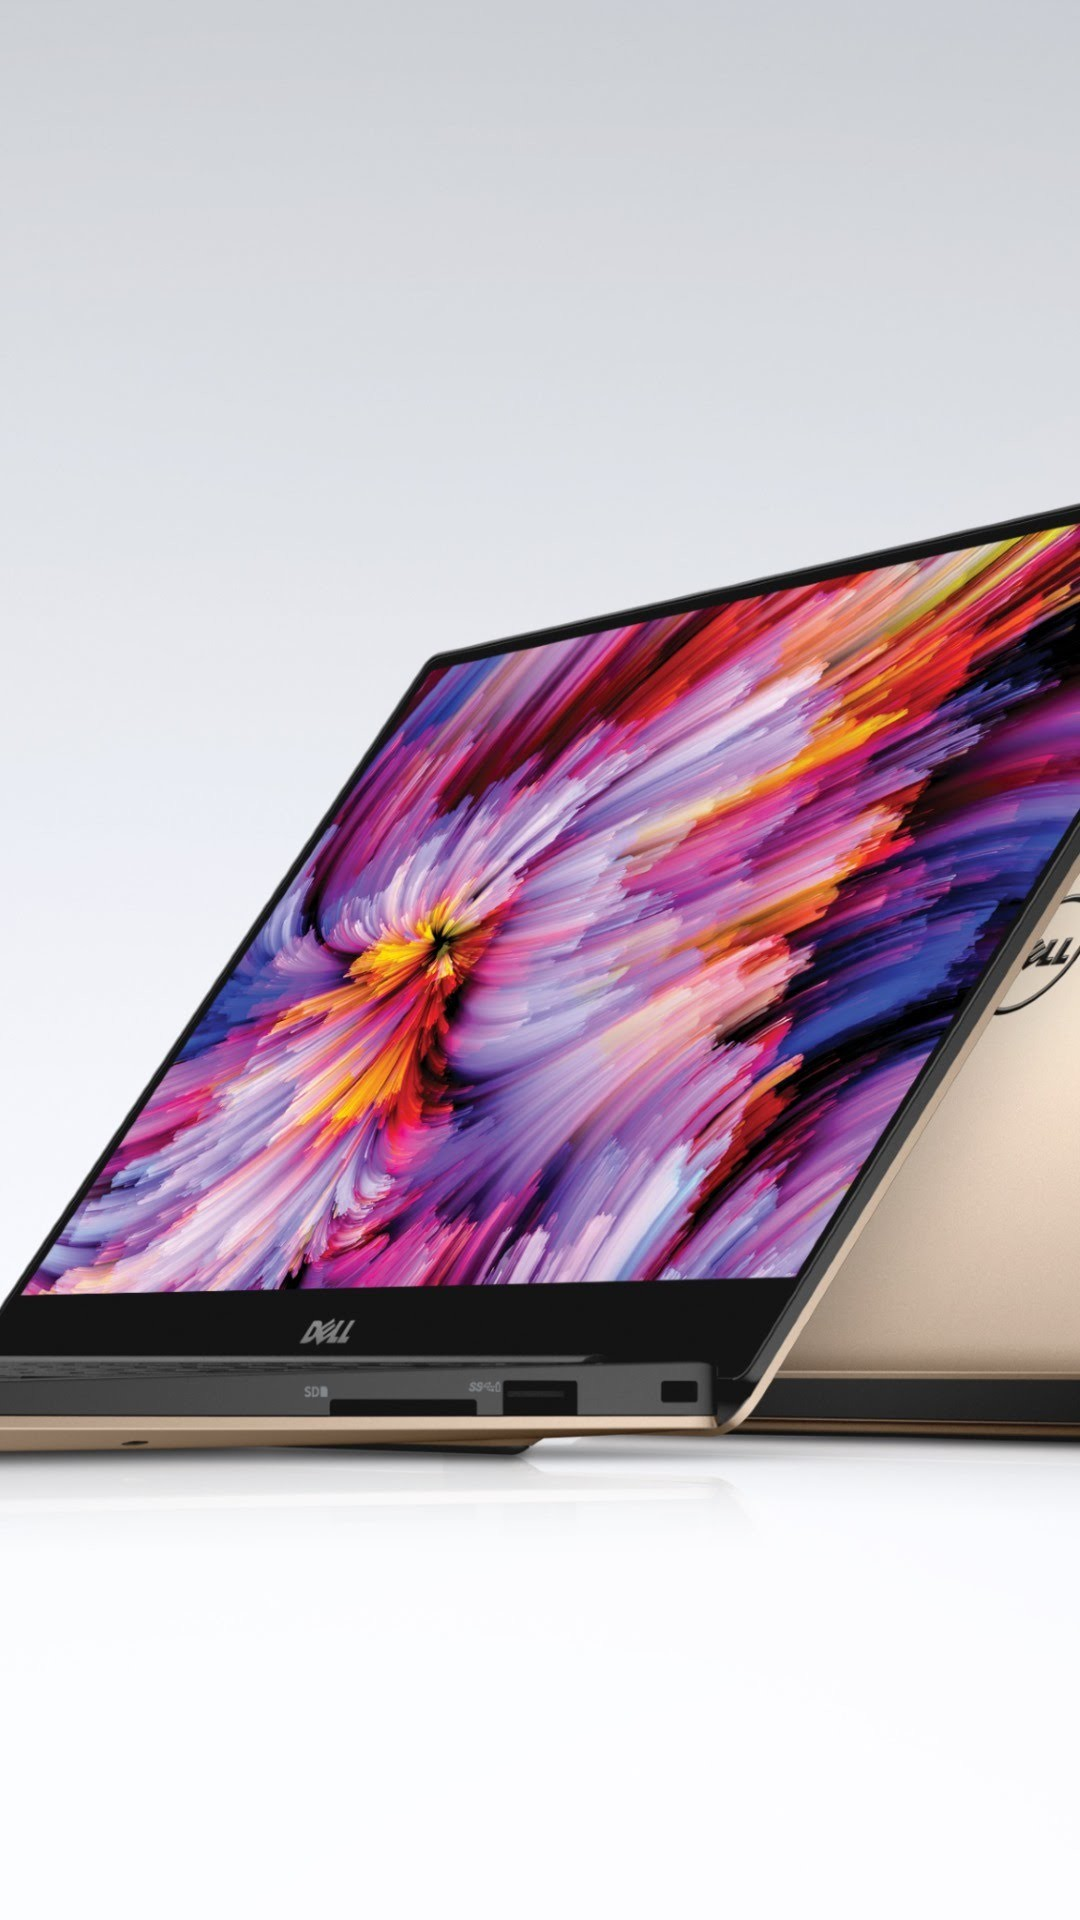 1080x1920 Dell XPS ultrabook is featured in this image under the Computer label ·  Save the ultrabook wallpaper from listed links in 4K and HD sizes if you'd  like to ...